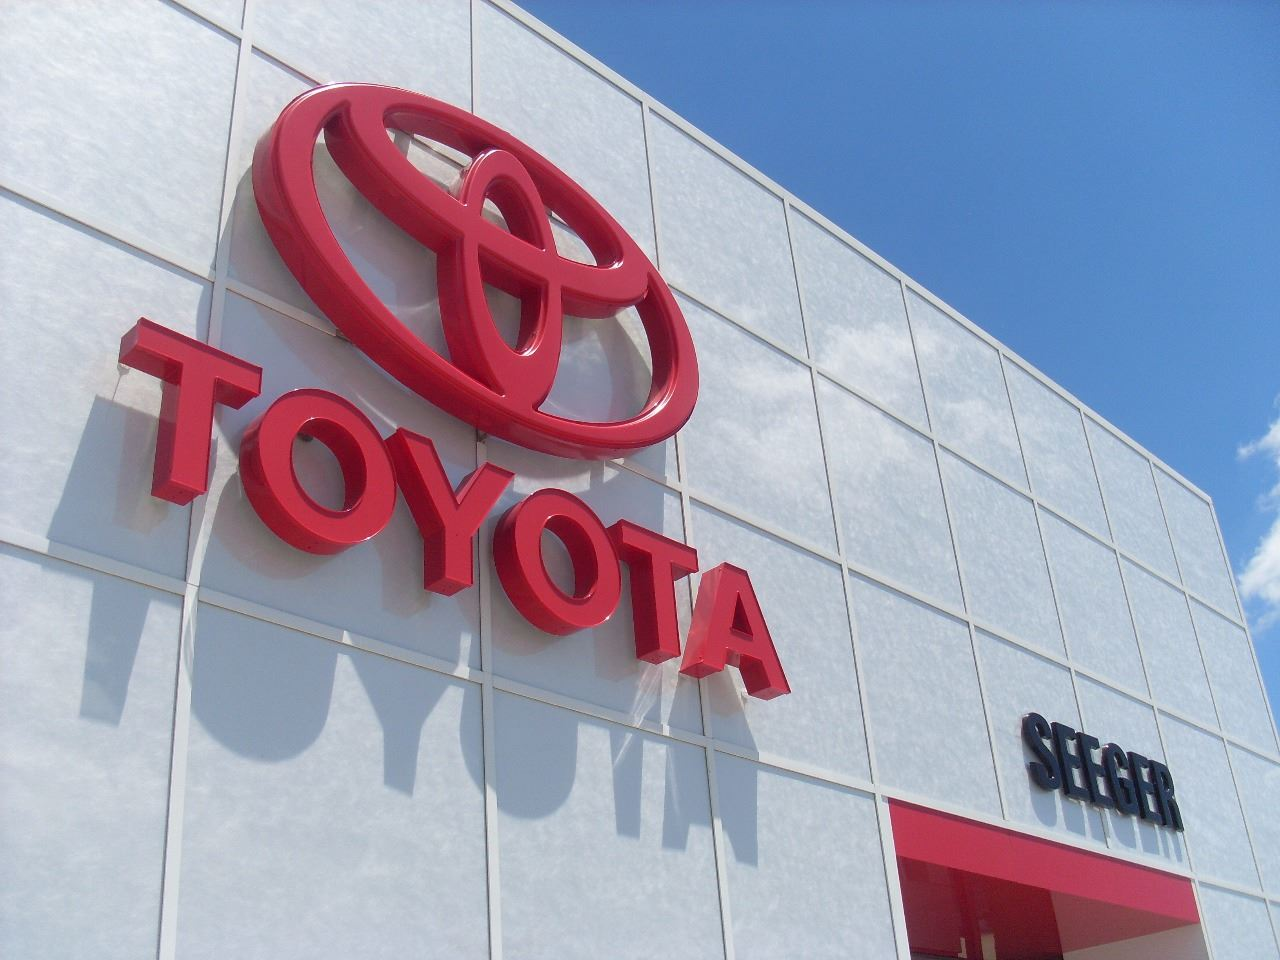 SEEGER TOYOTA OF ST ROBERT